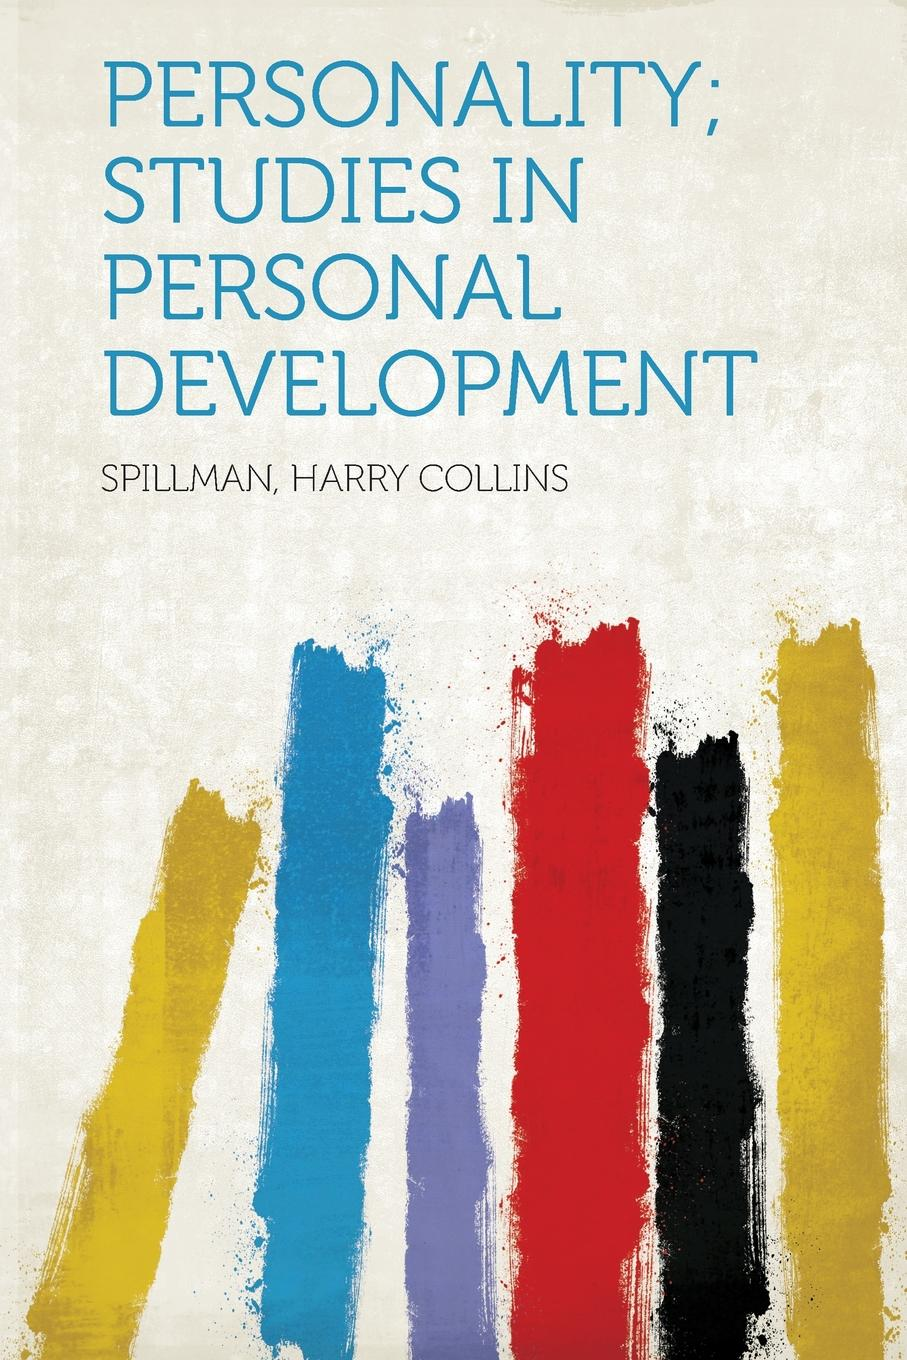 Spillman Harry Collins Personality; Studies in Personal Development